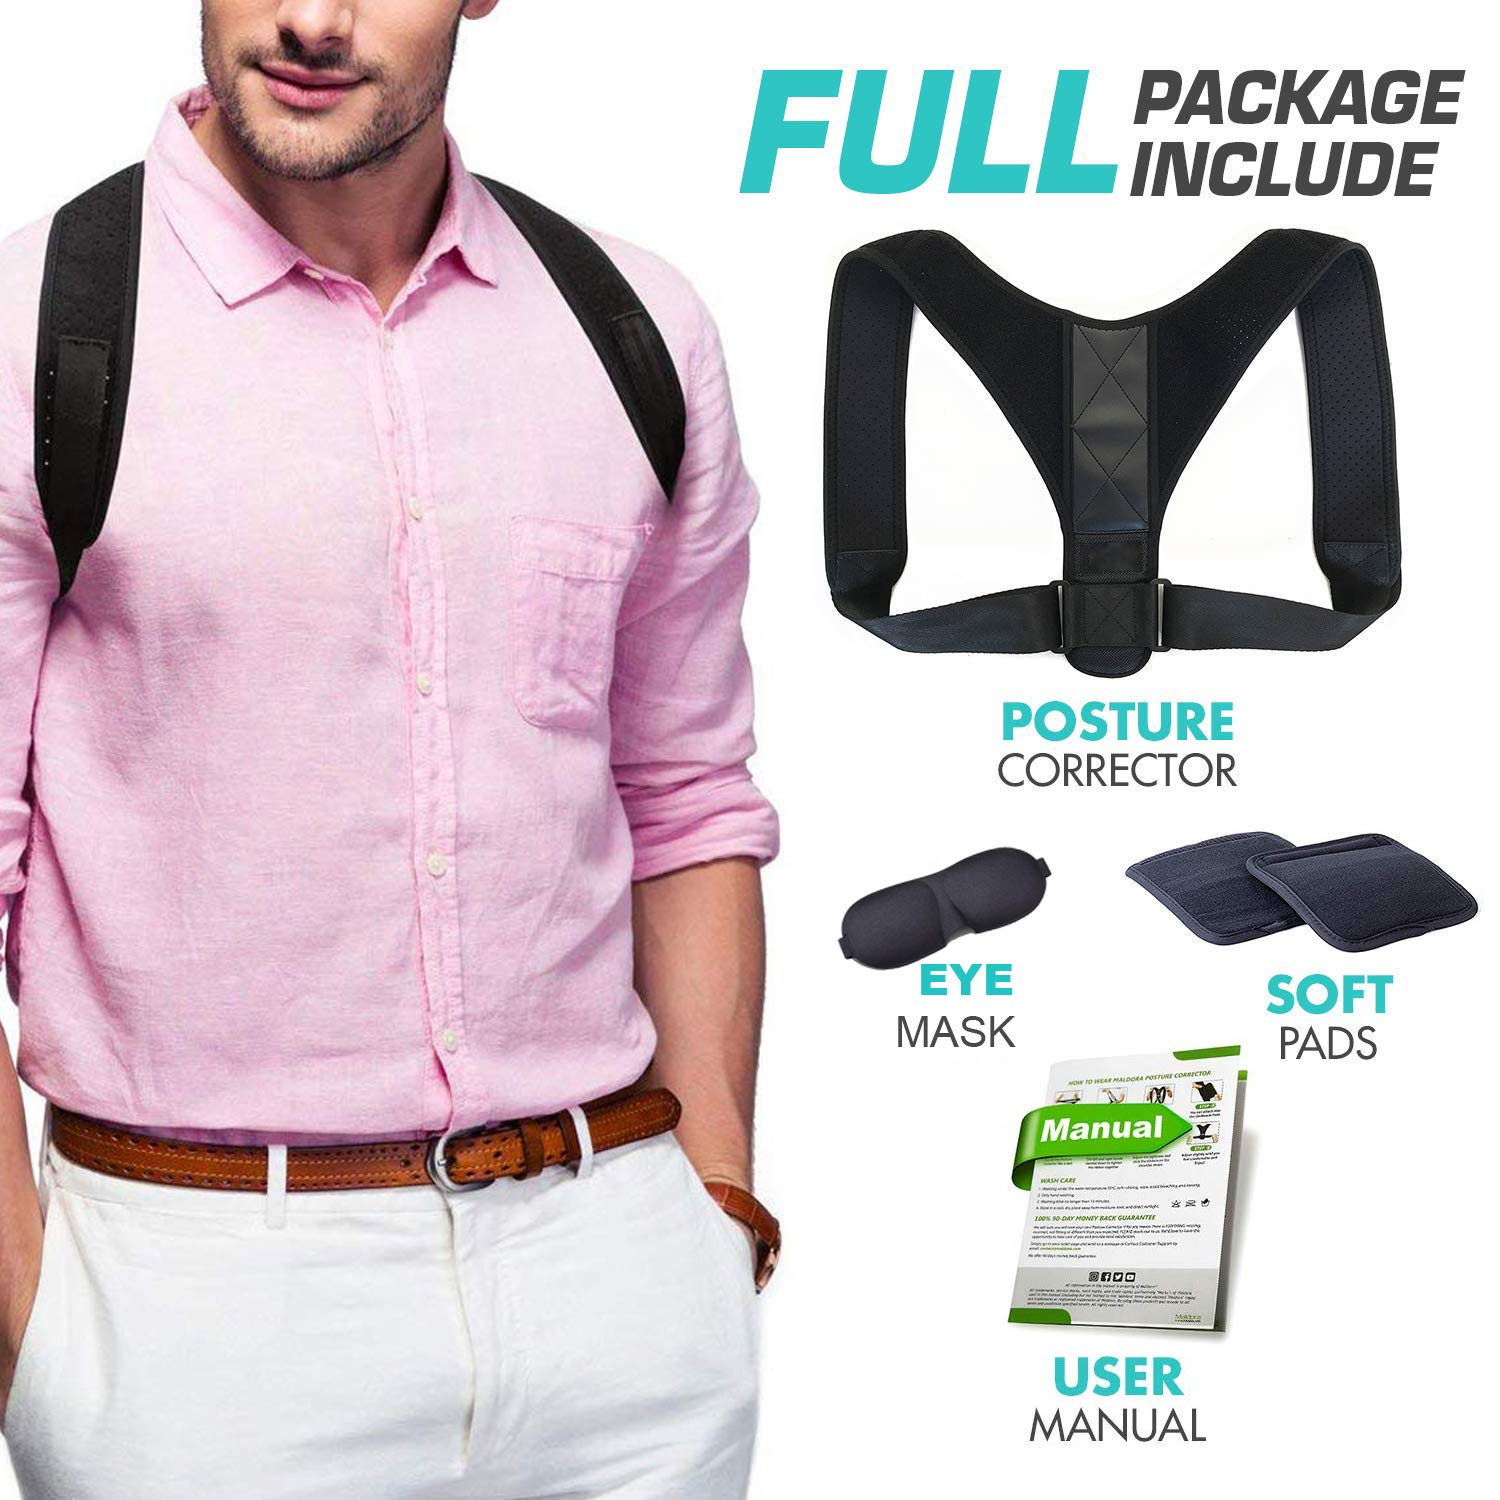 Posture Corrector for Women and Men - FDA Approved Adjustable Upper Back Brace for Clavicle Support and Pain Relief from Neck, Back & Shoulder - Correct Slouching, Hunching & Bad Posture